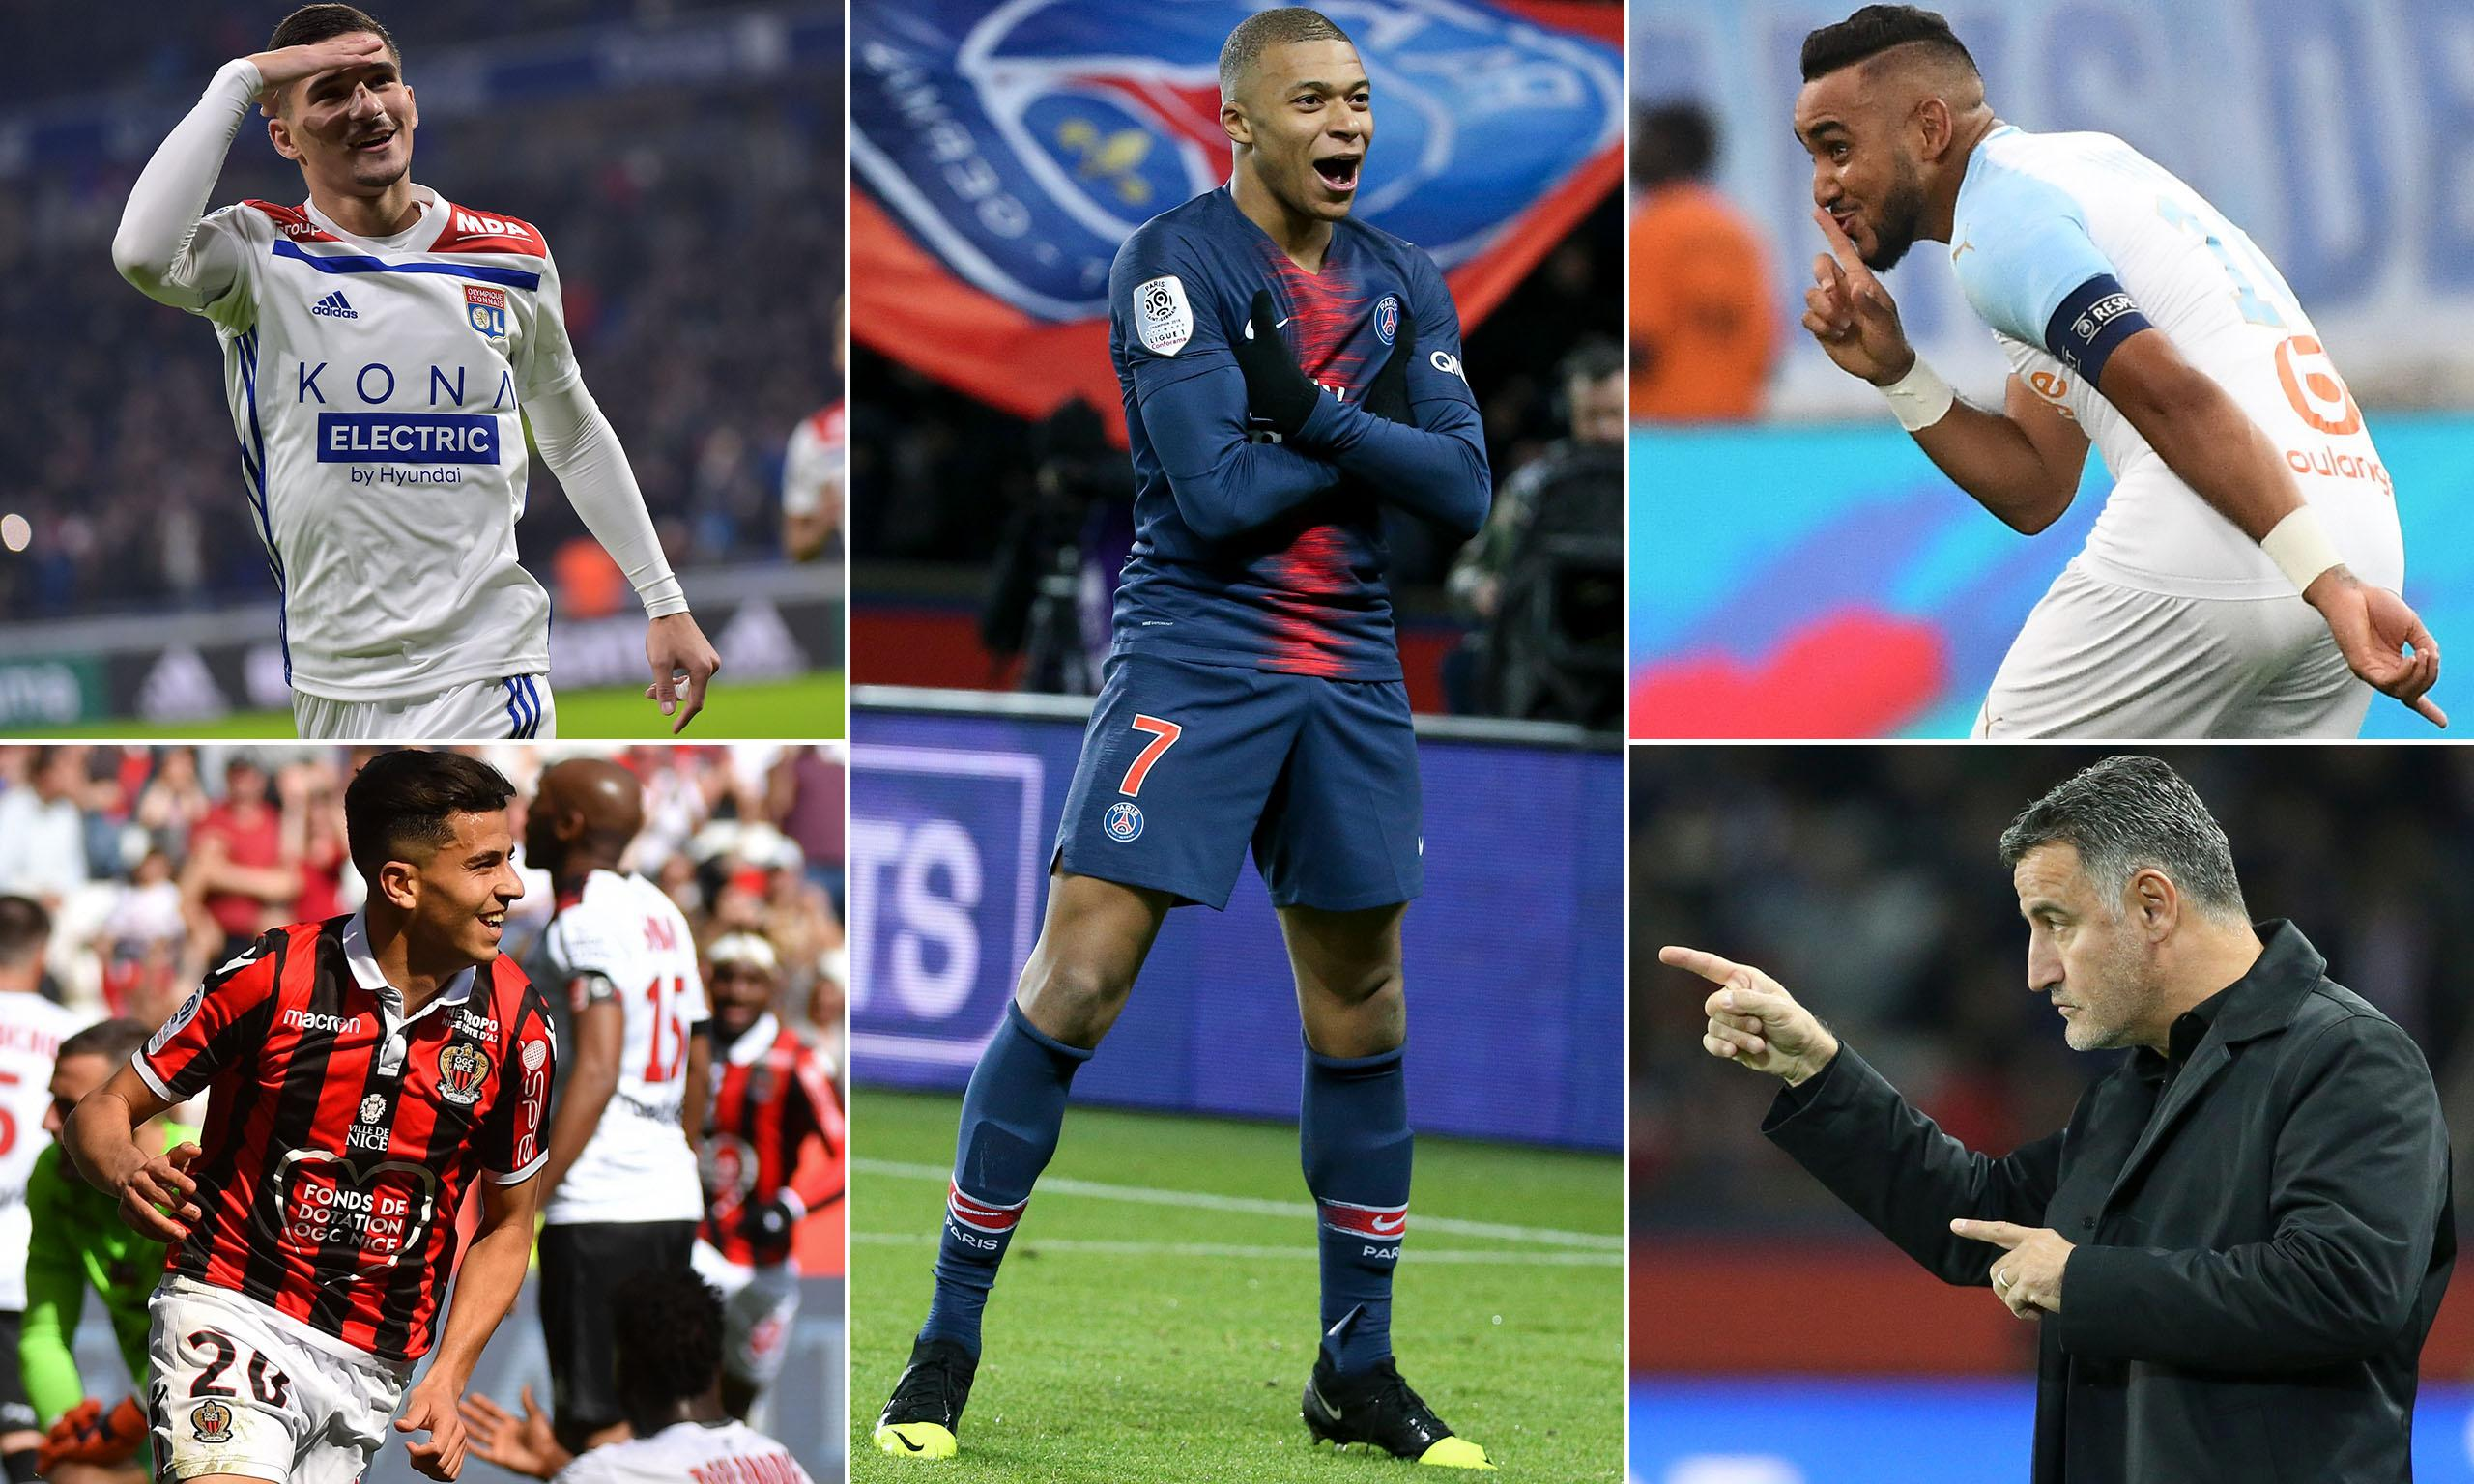 It's the Adam and Erics 2019! The complete review of the Ligue 1 season